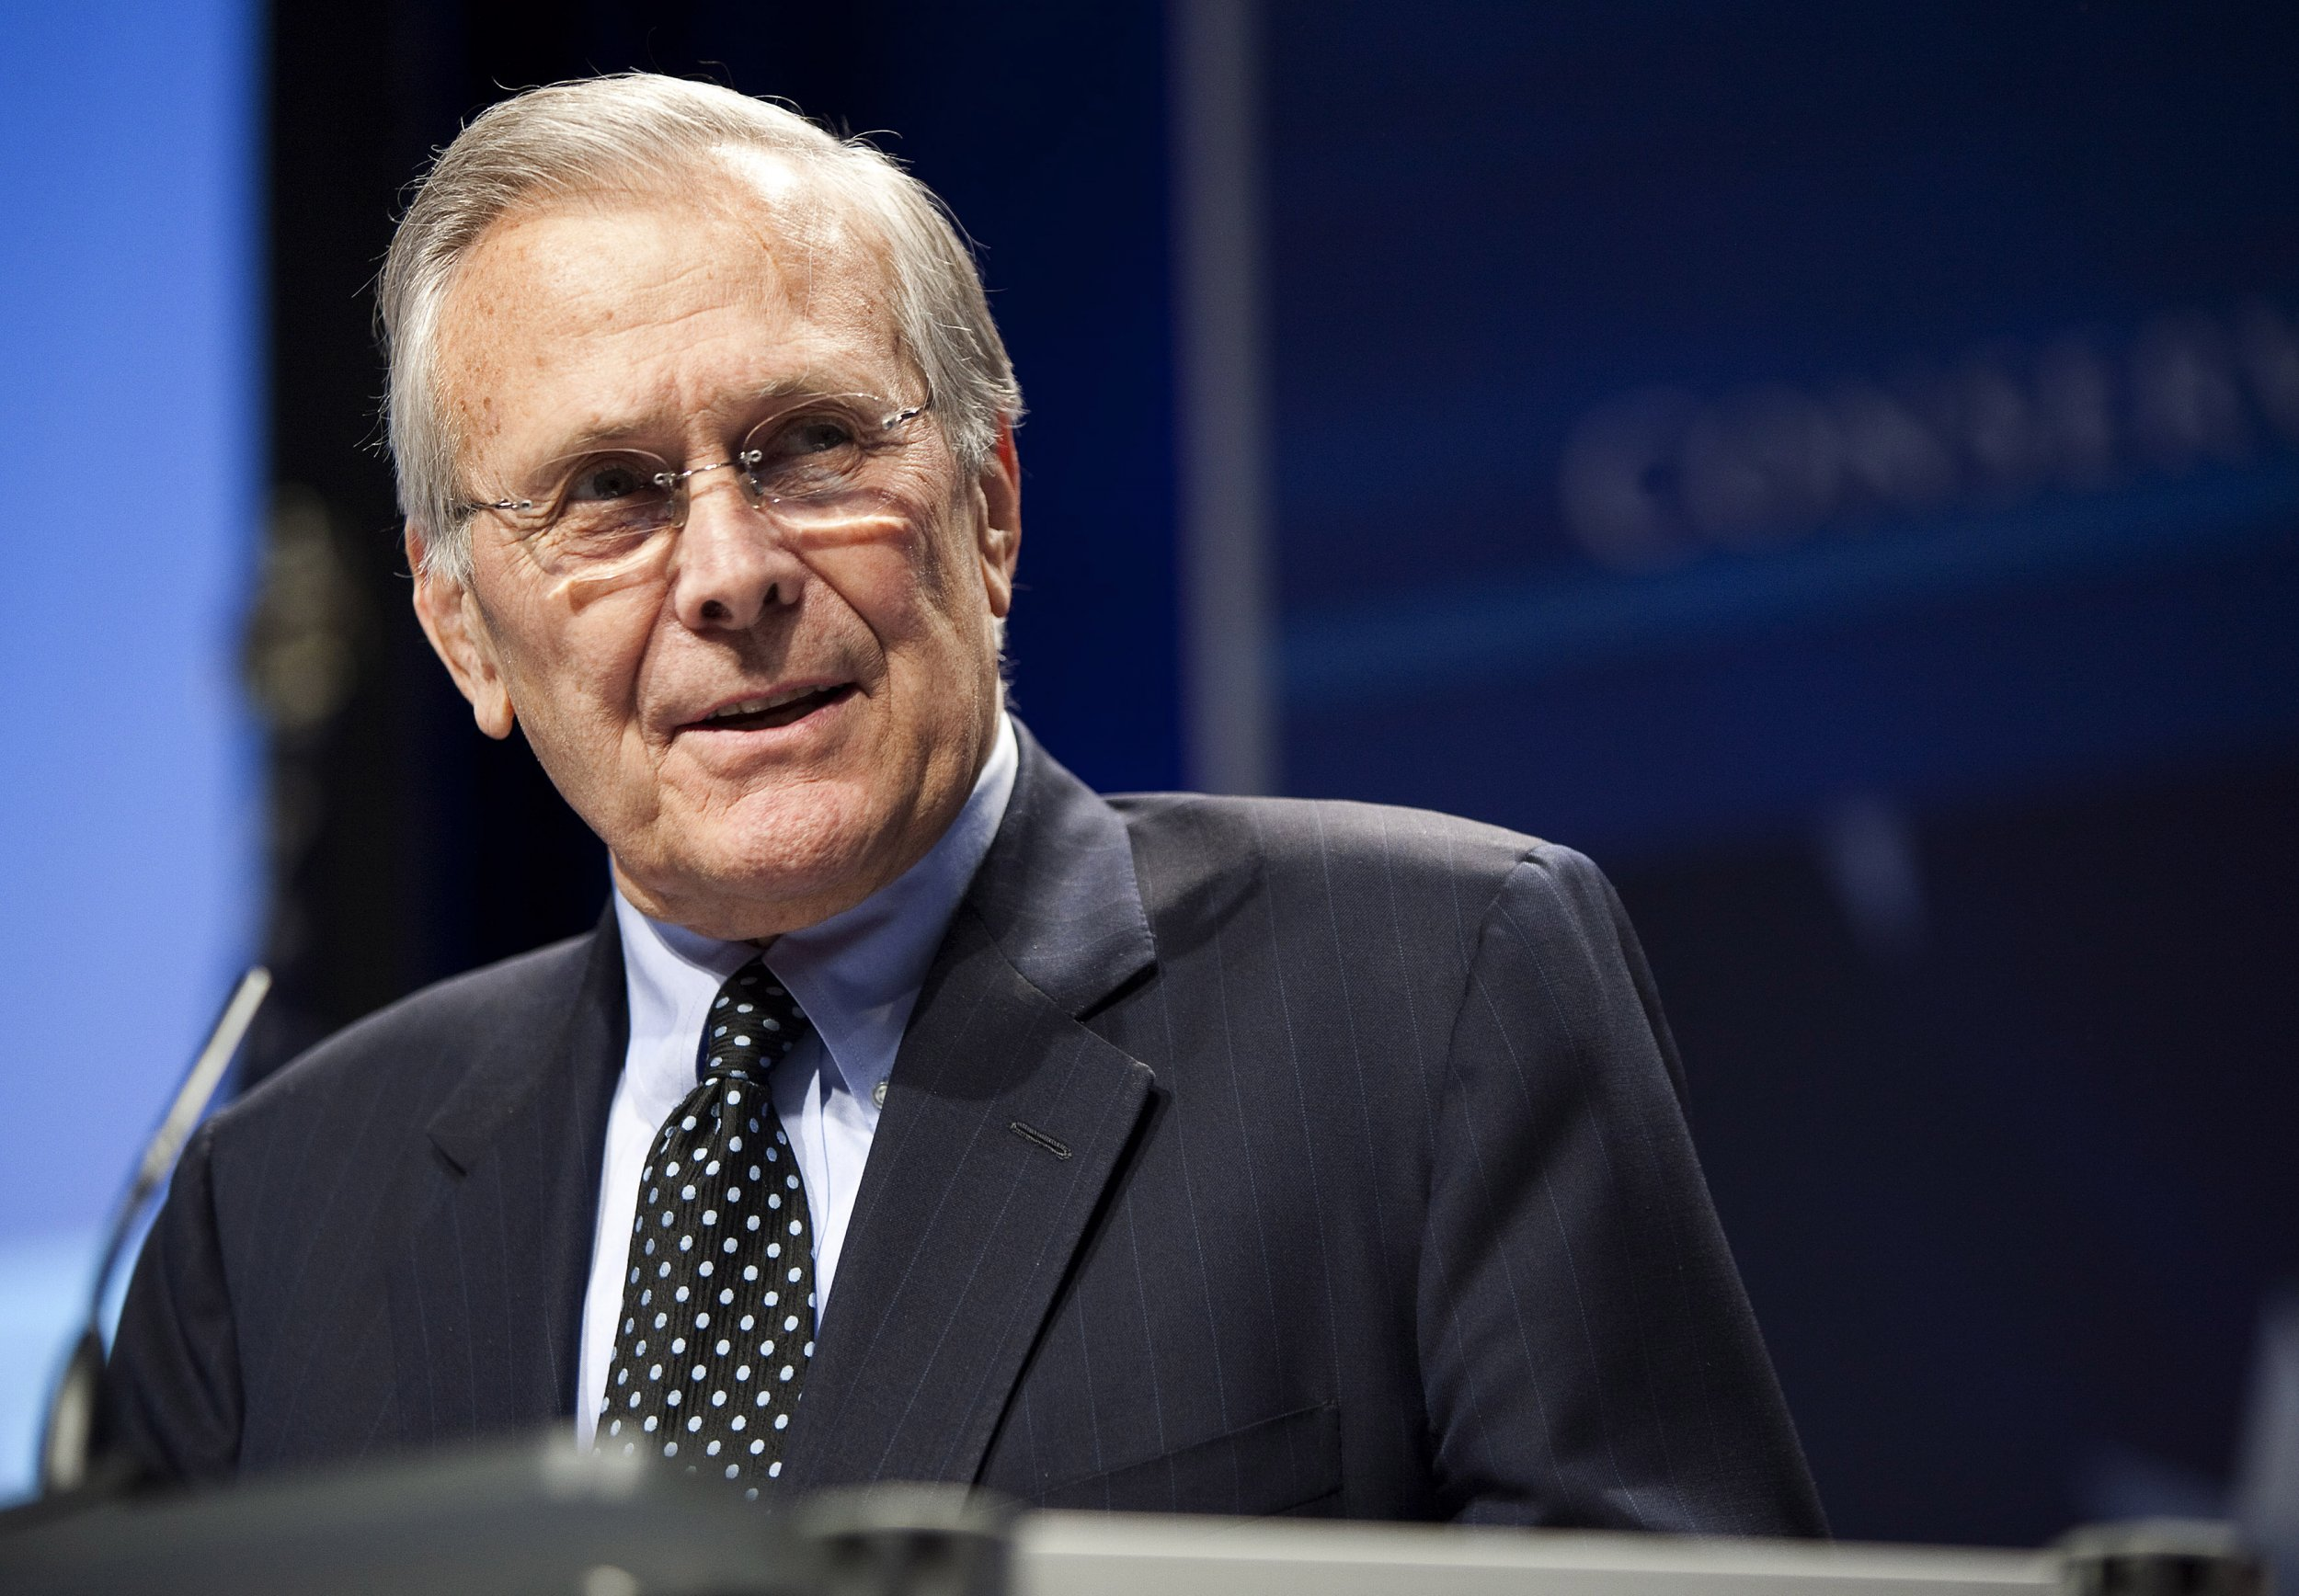 Former Secretary of Defense Donald Rumsfeld